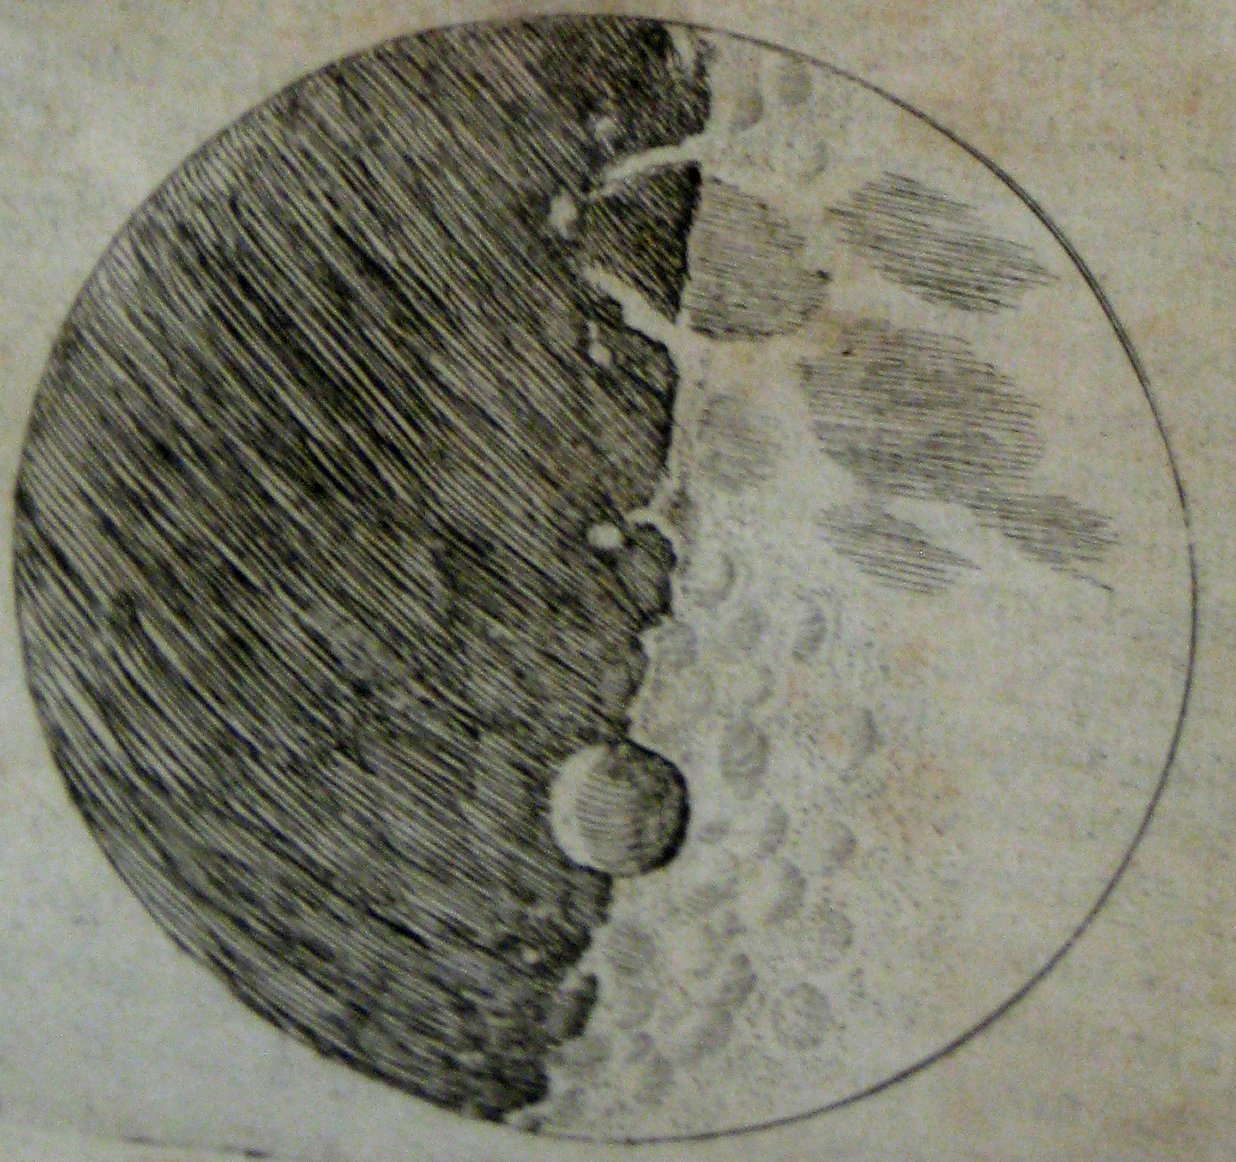 File:Galileos Original Moon Drawings (3053656871).jpg - Wikimedia ...